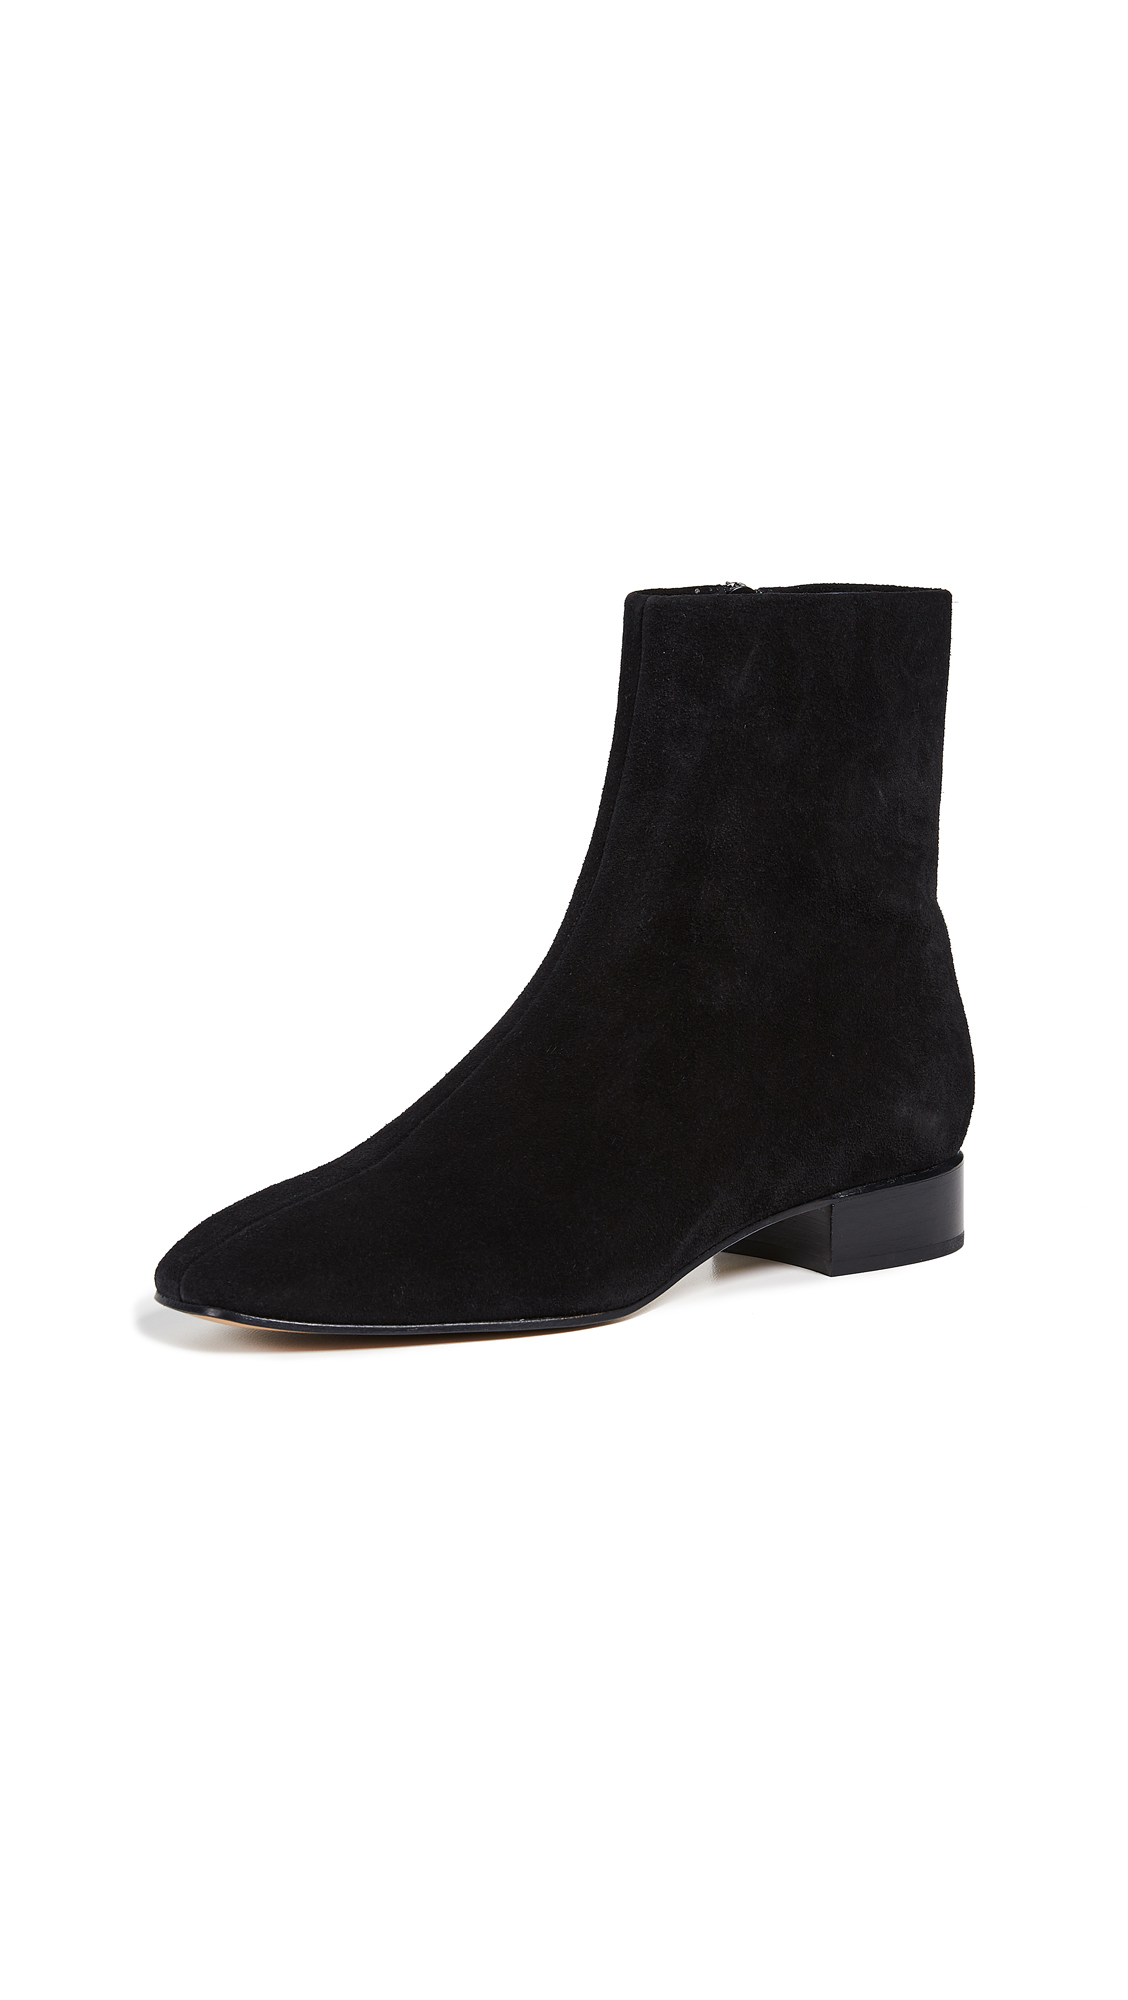 Rag & Bone Aslen Flat Booties